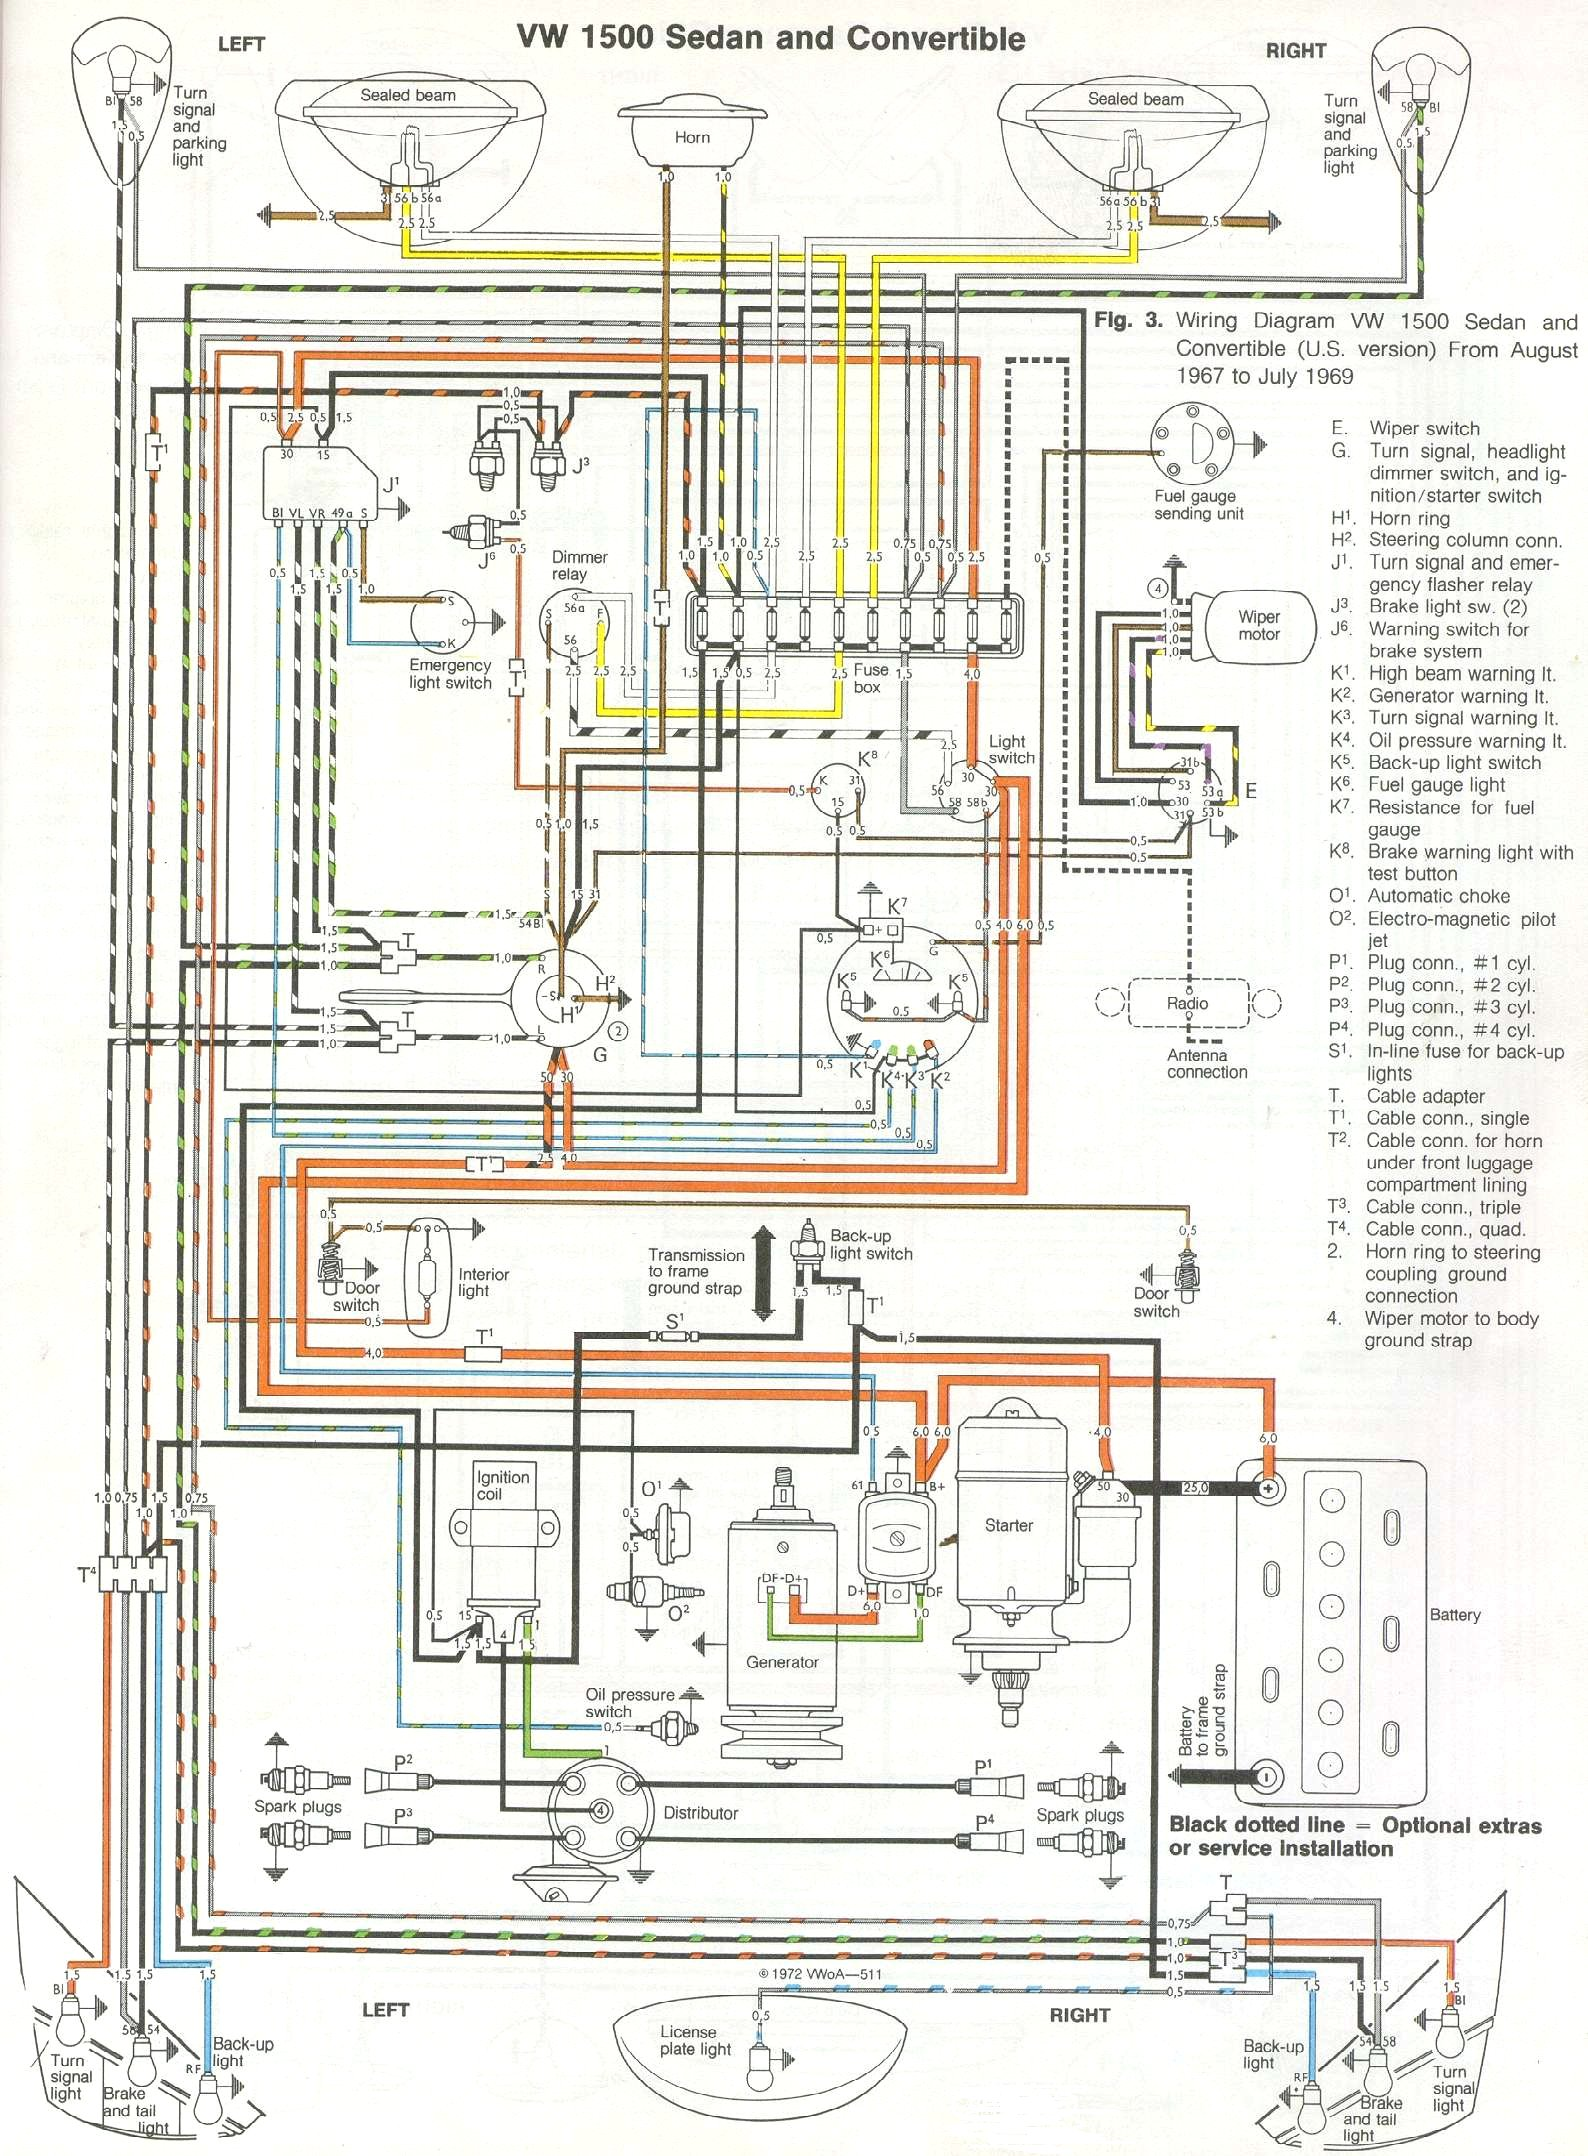 bug_6869 1969 71 beetle wiring diagram thegoldenbug com Turn Signal Flasher Wiring-Diagram at gsmx.co